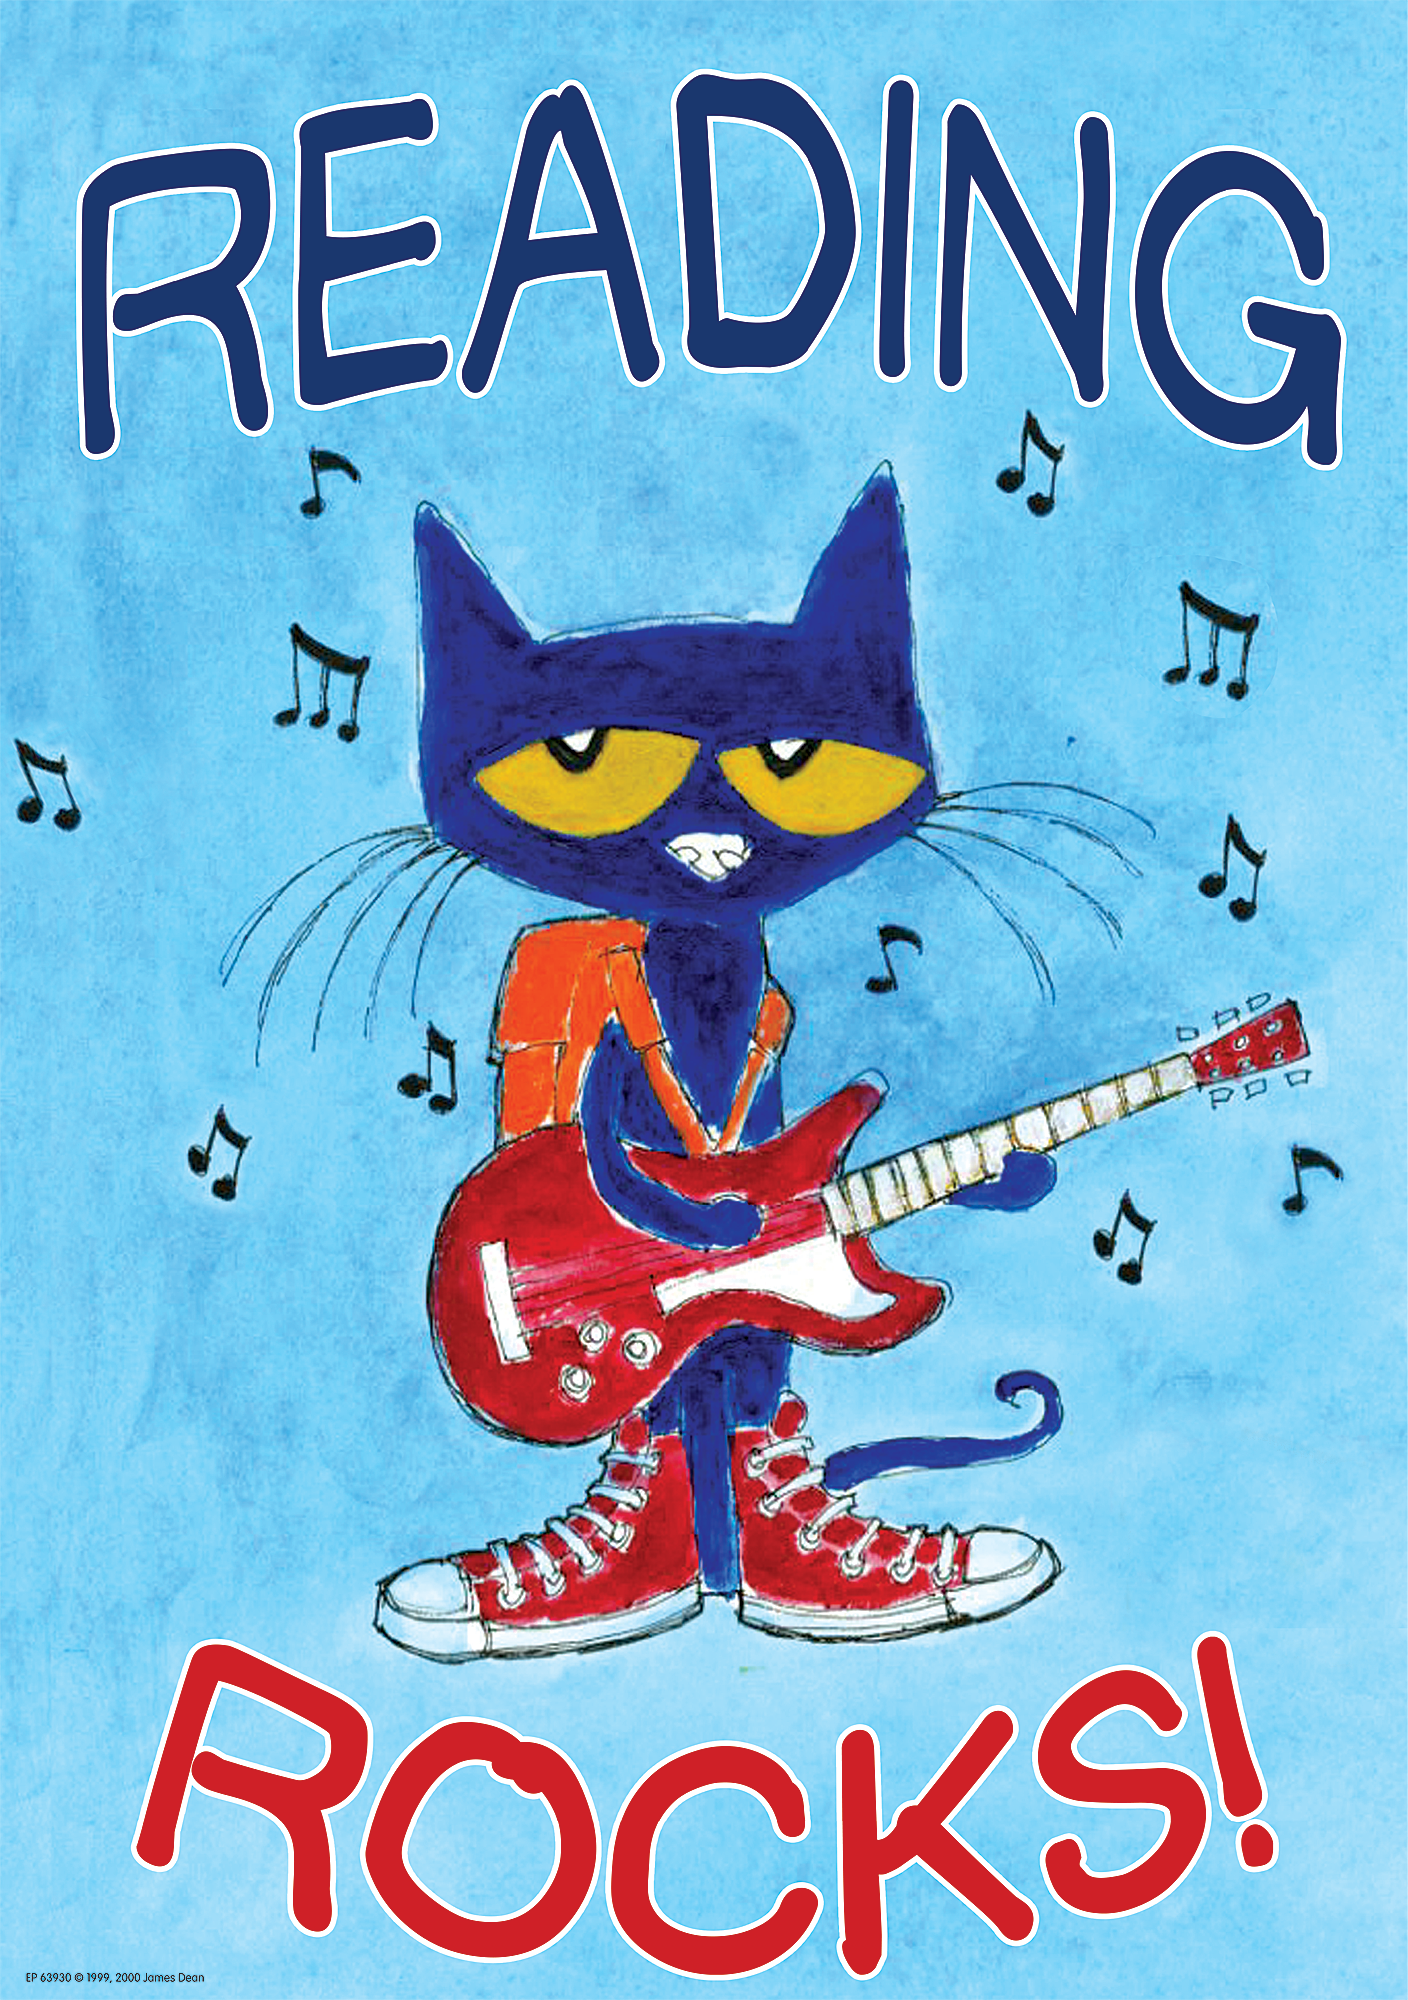 Pete The Cat Reading Rocks Poster Inspire And Motivate Kids Of All Ages Brightens Any Classroom Poster Measures 13 3 8 Pete The Cat Pete The Cats I School